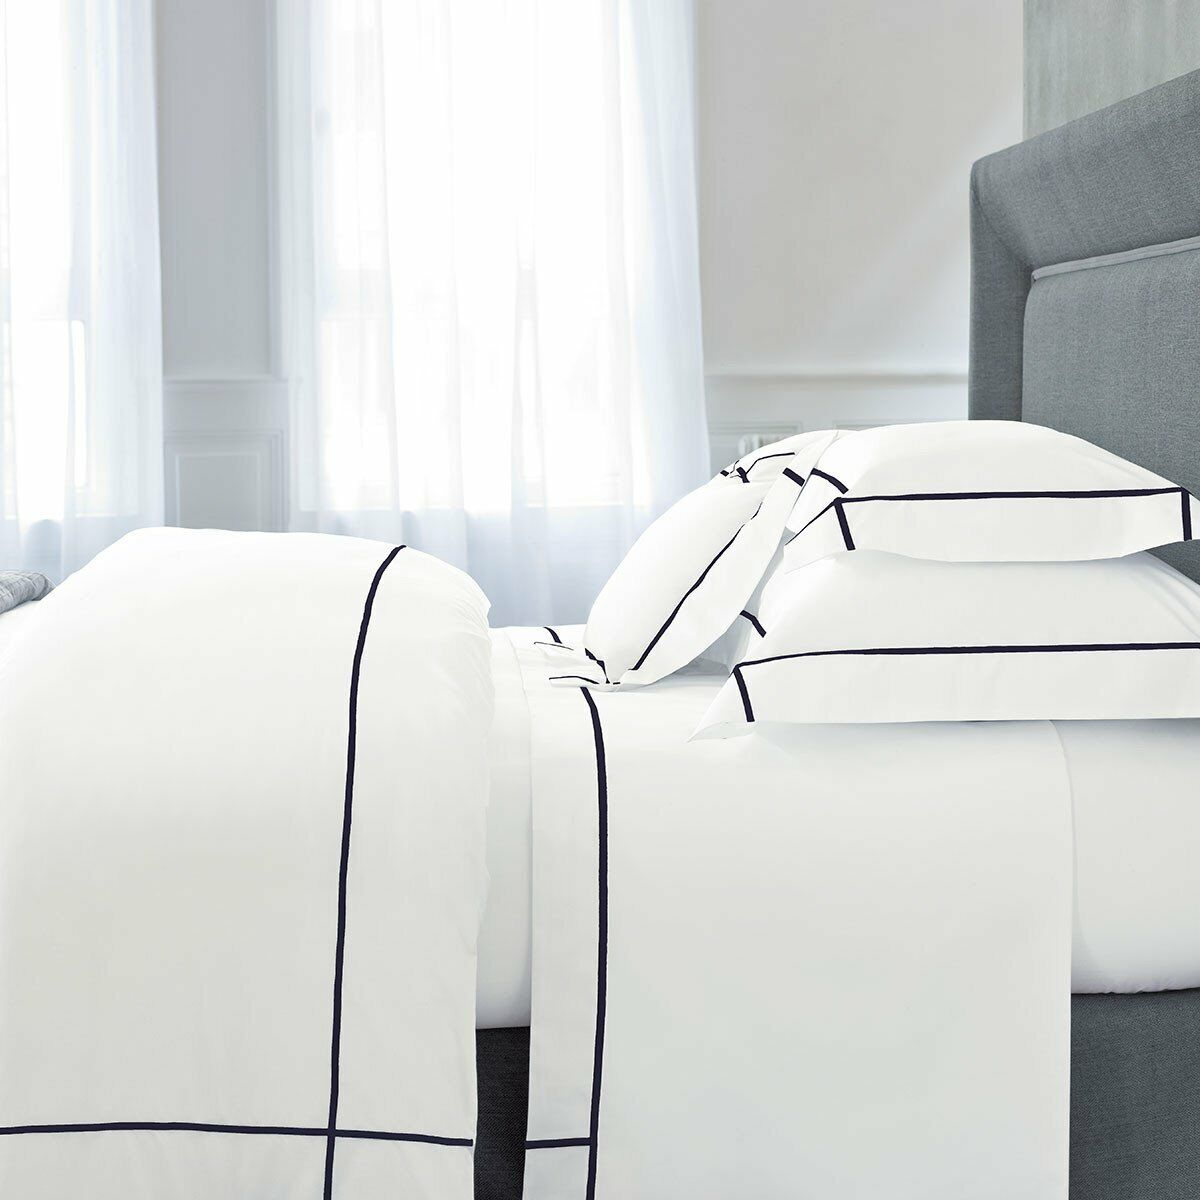 FRANCE YVES DELORME ATHENA COTTON PERCALE PILLOWCASE WITH FarbeFUL STITCH